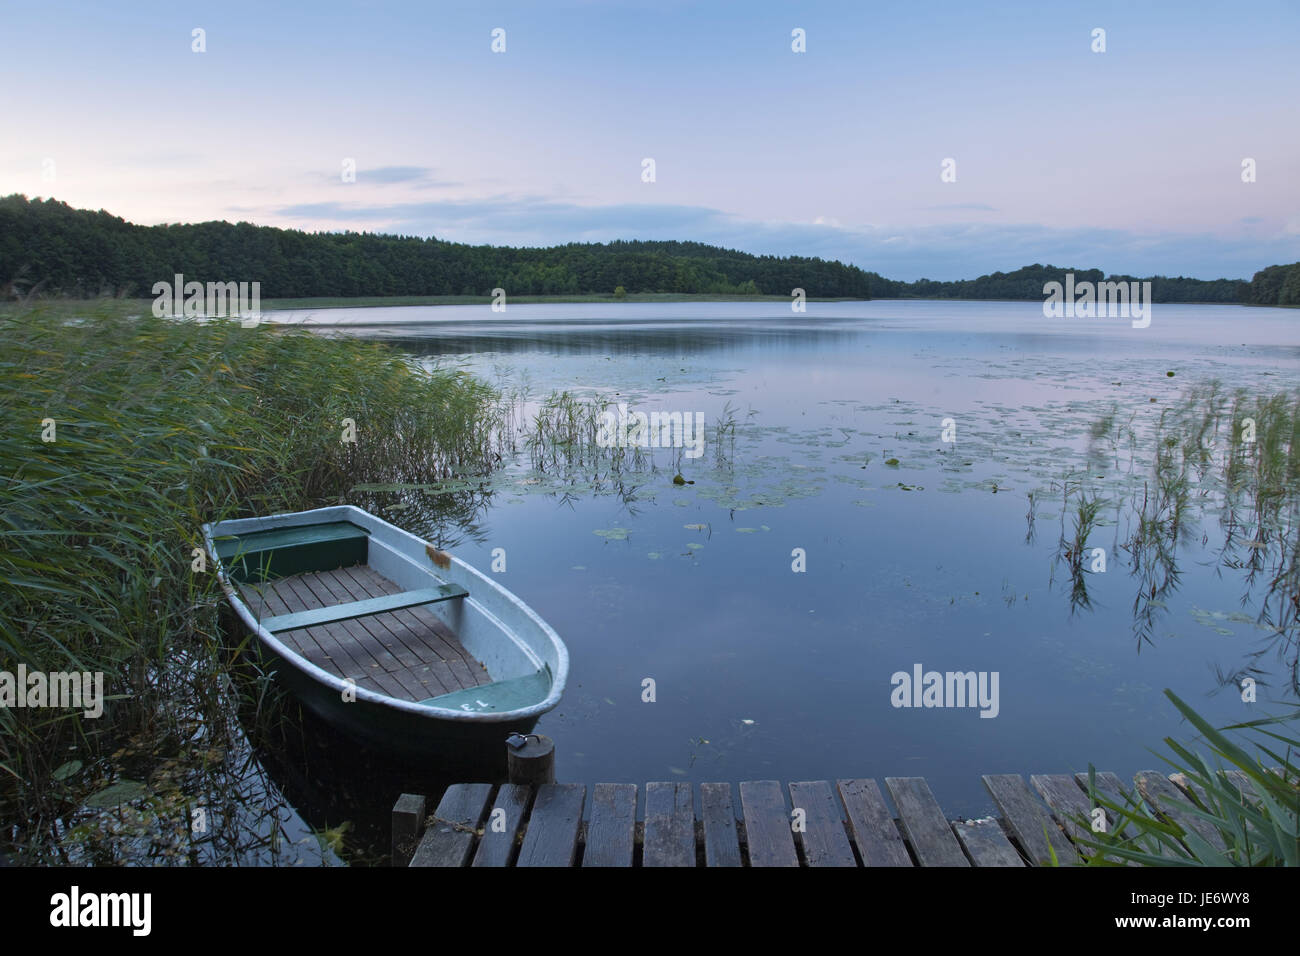 Germany, Mecklenburg-West Pomerania, Mecklenburg, Mecklenburg lowland plain full of lakes, castle Kratze, Dambeck, - Stock Image